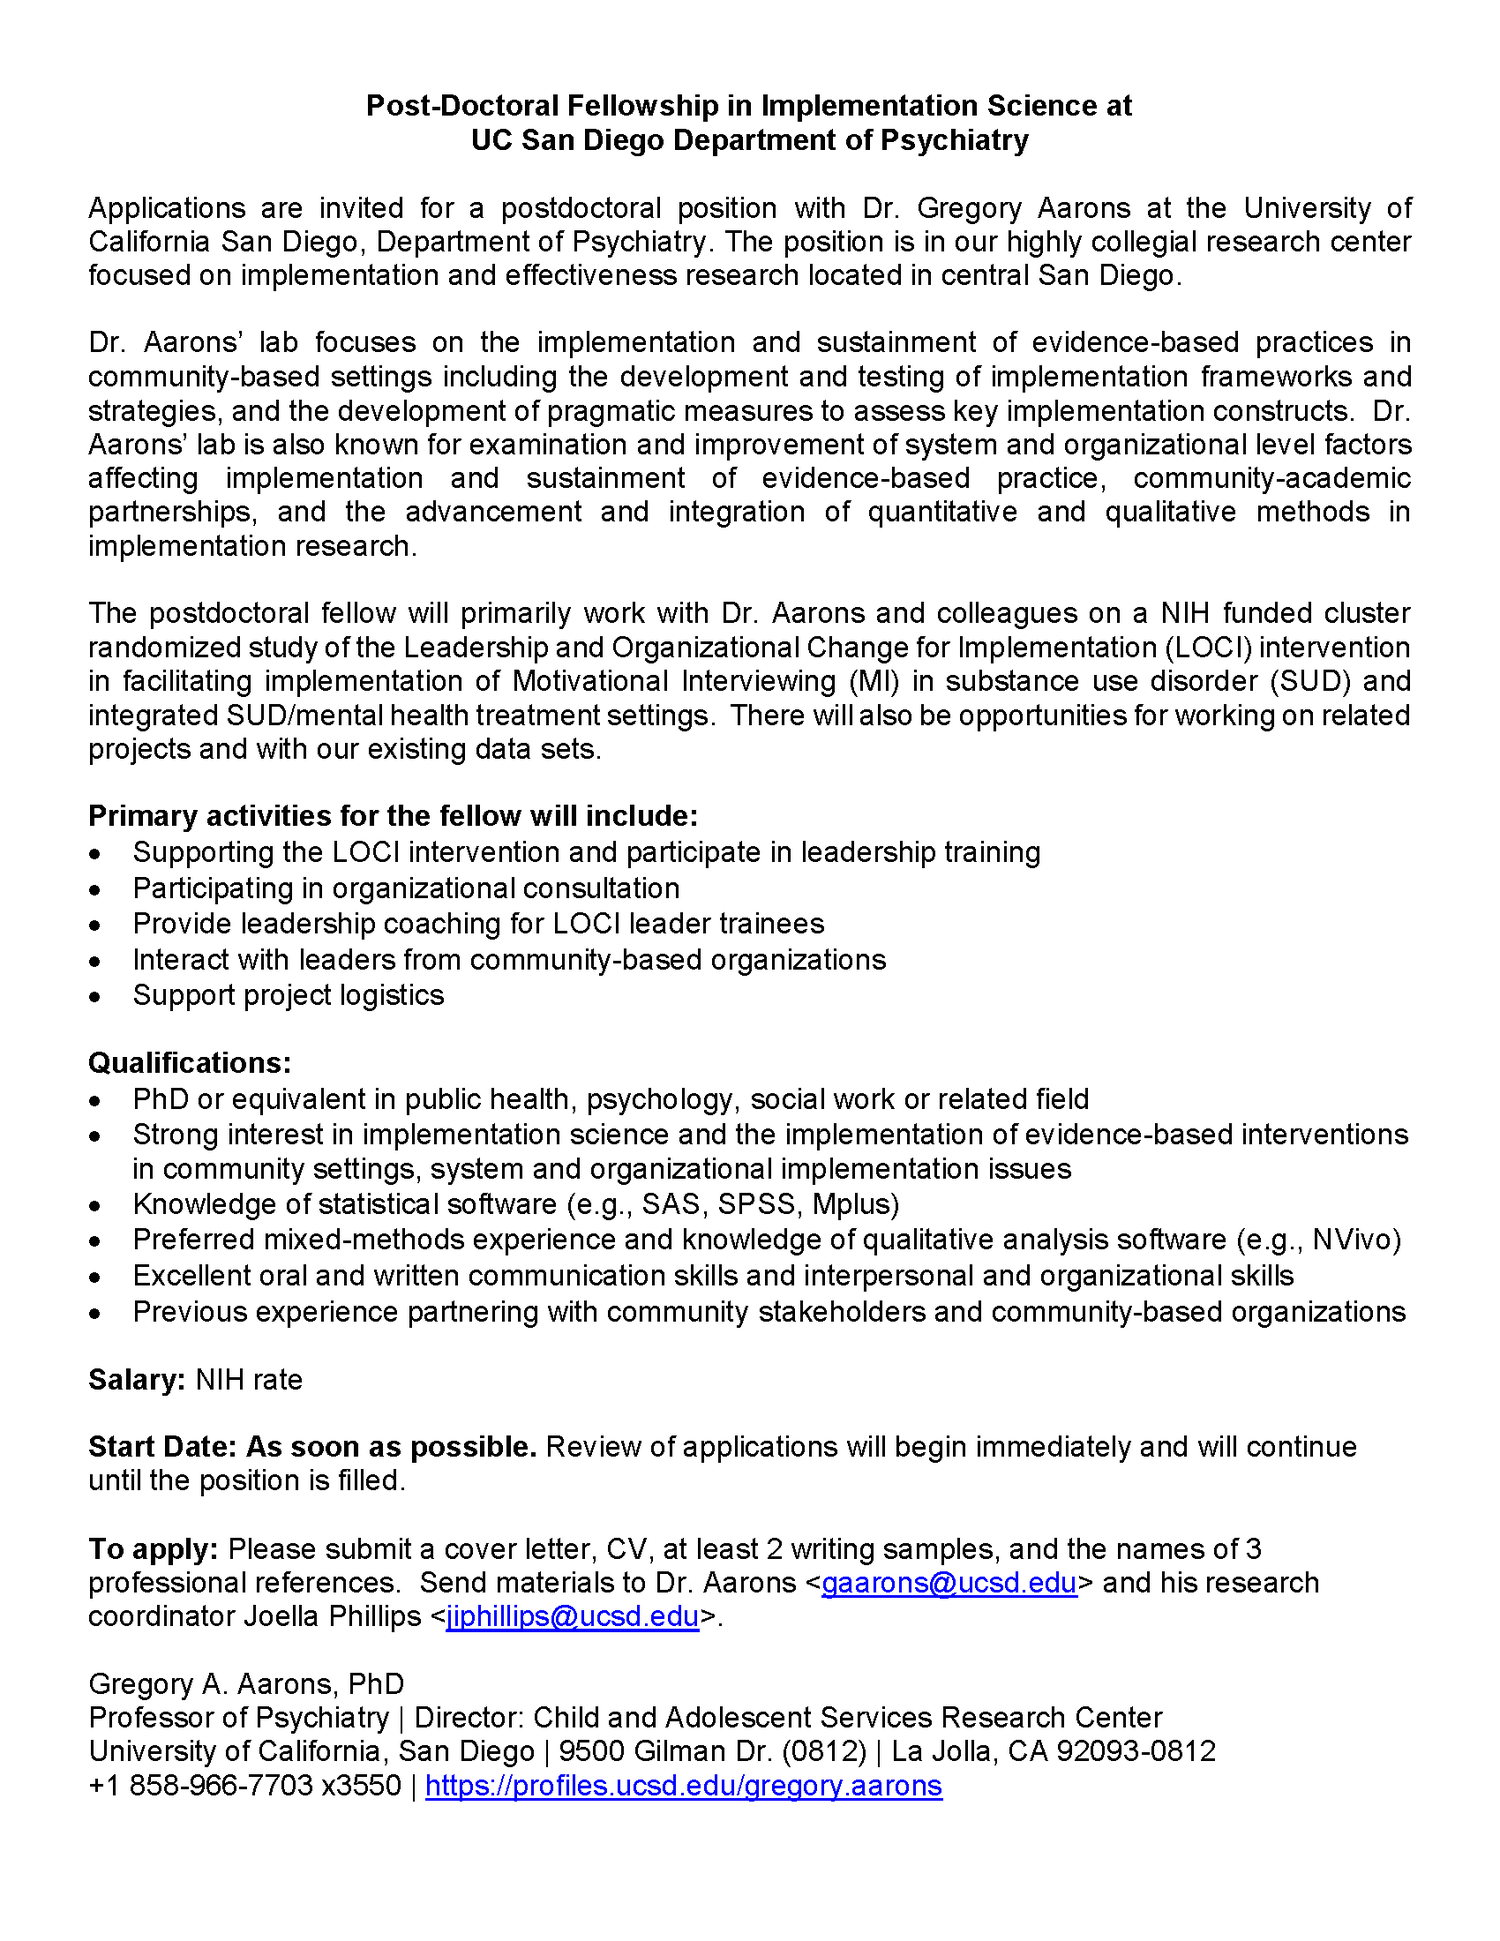 Post-Doctoral fellowship opportunity in Implementation Science with